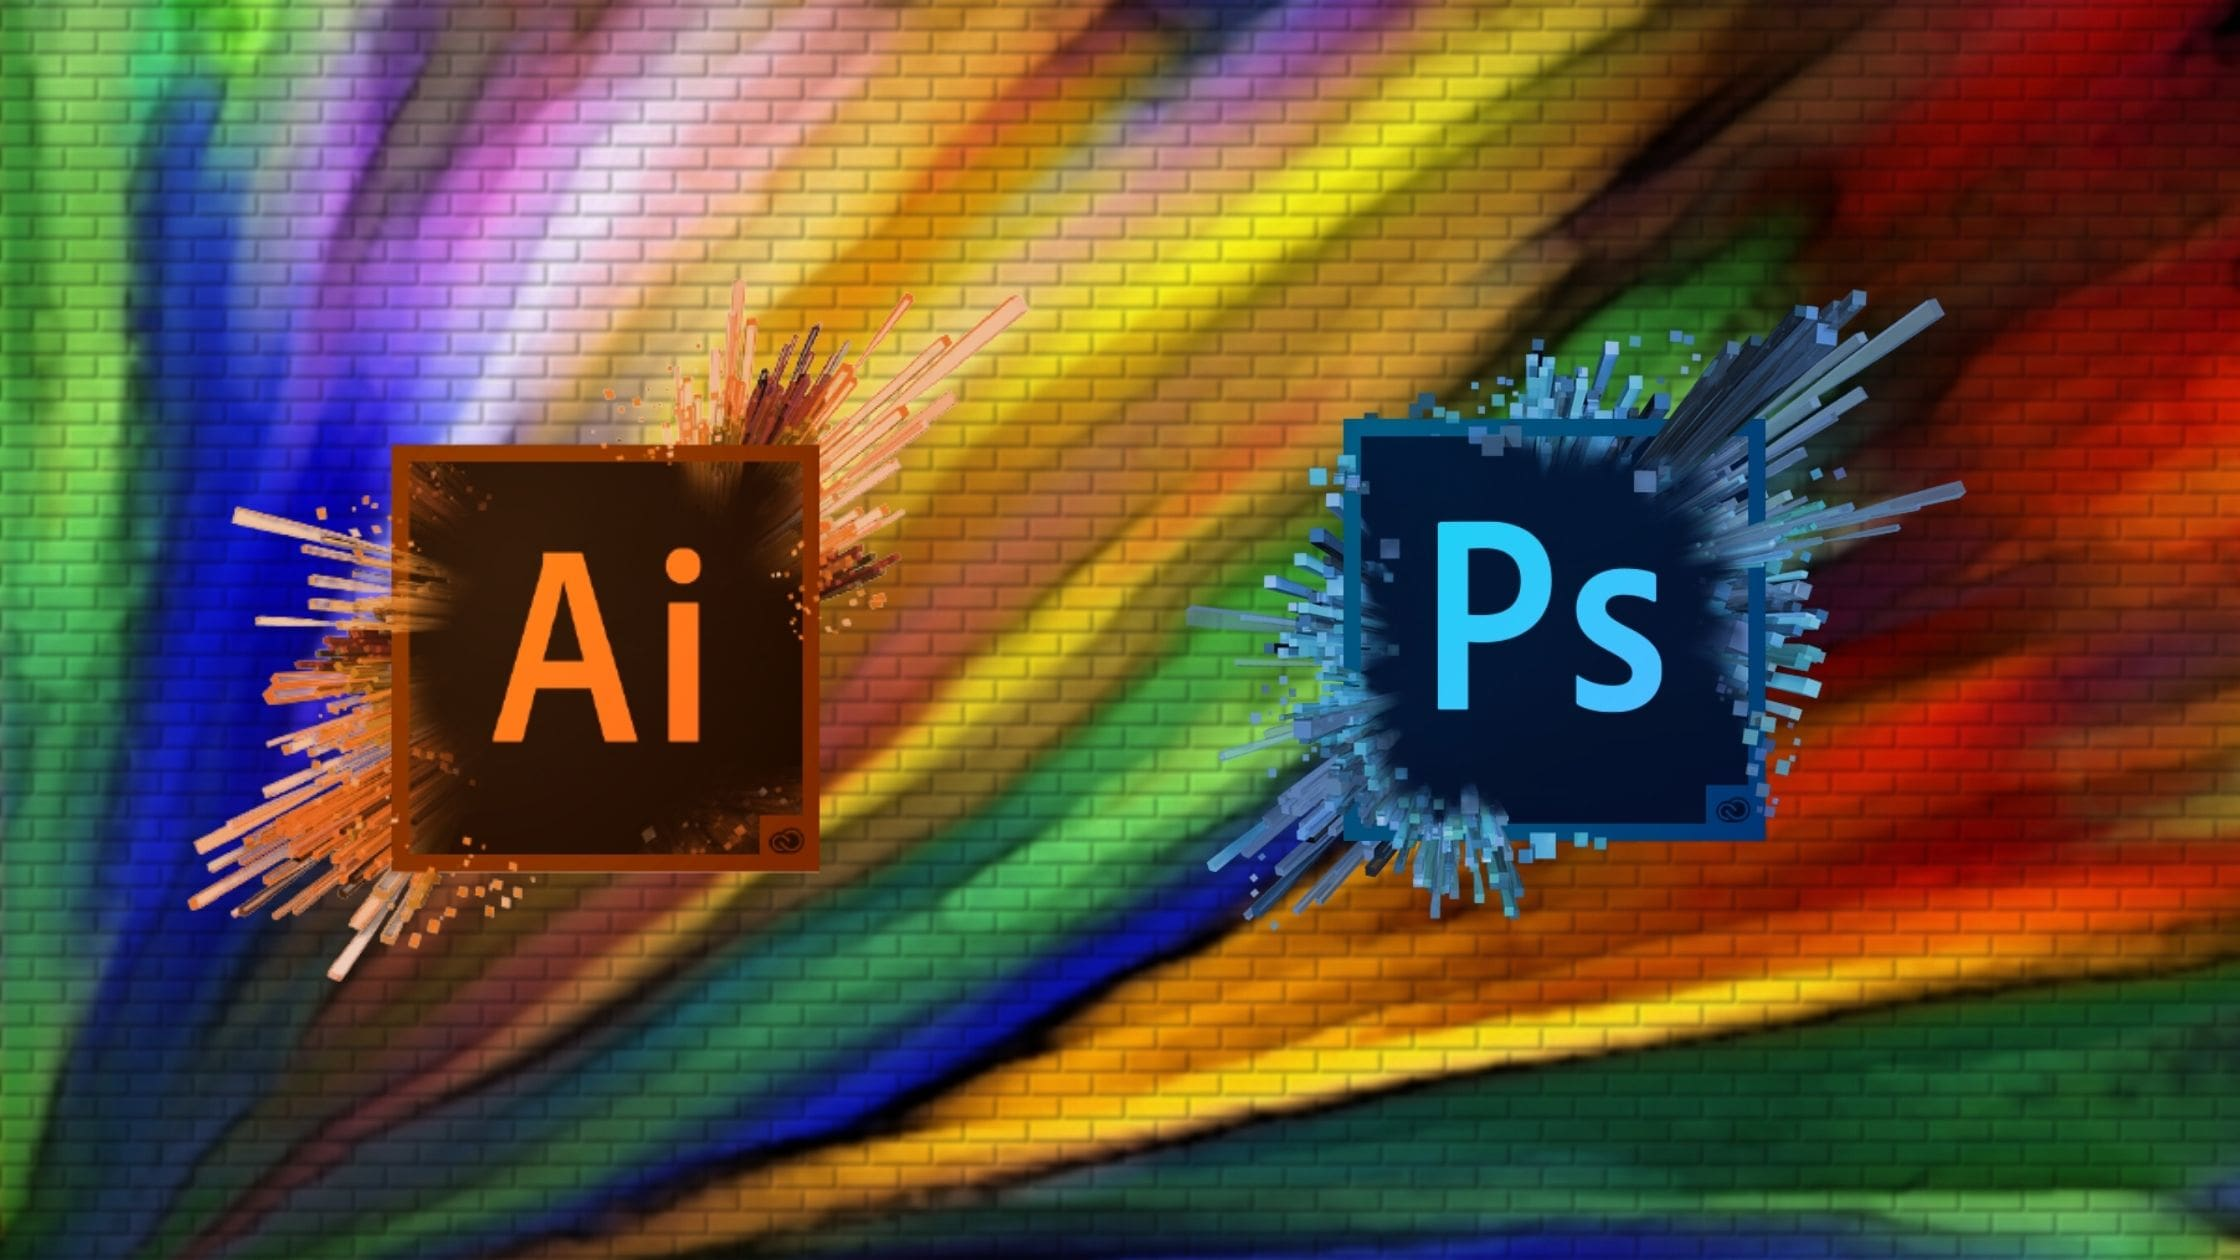 Graphics Designing Course for Everyone